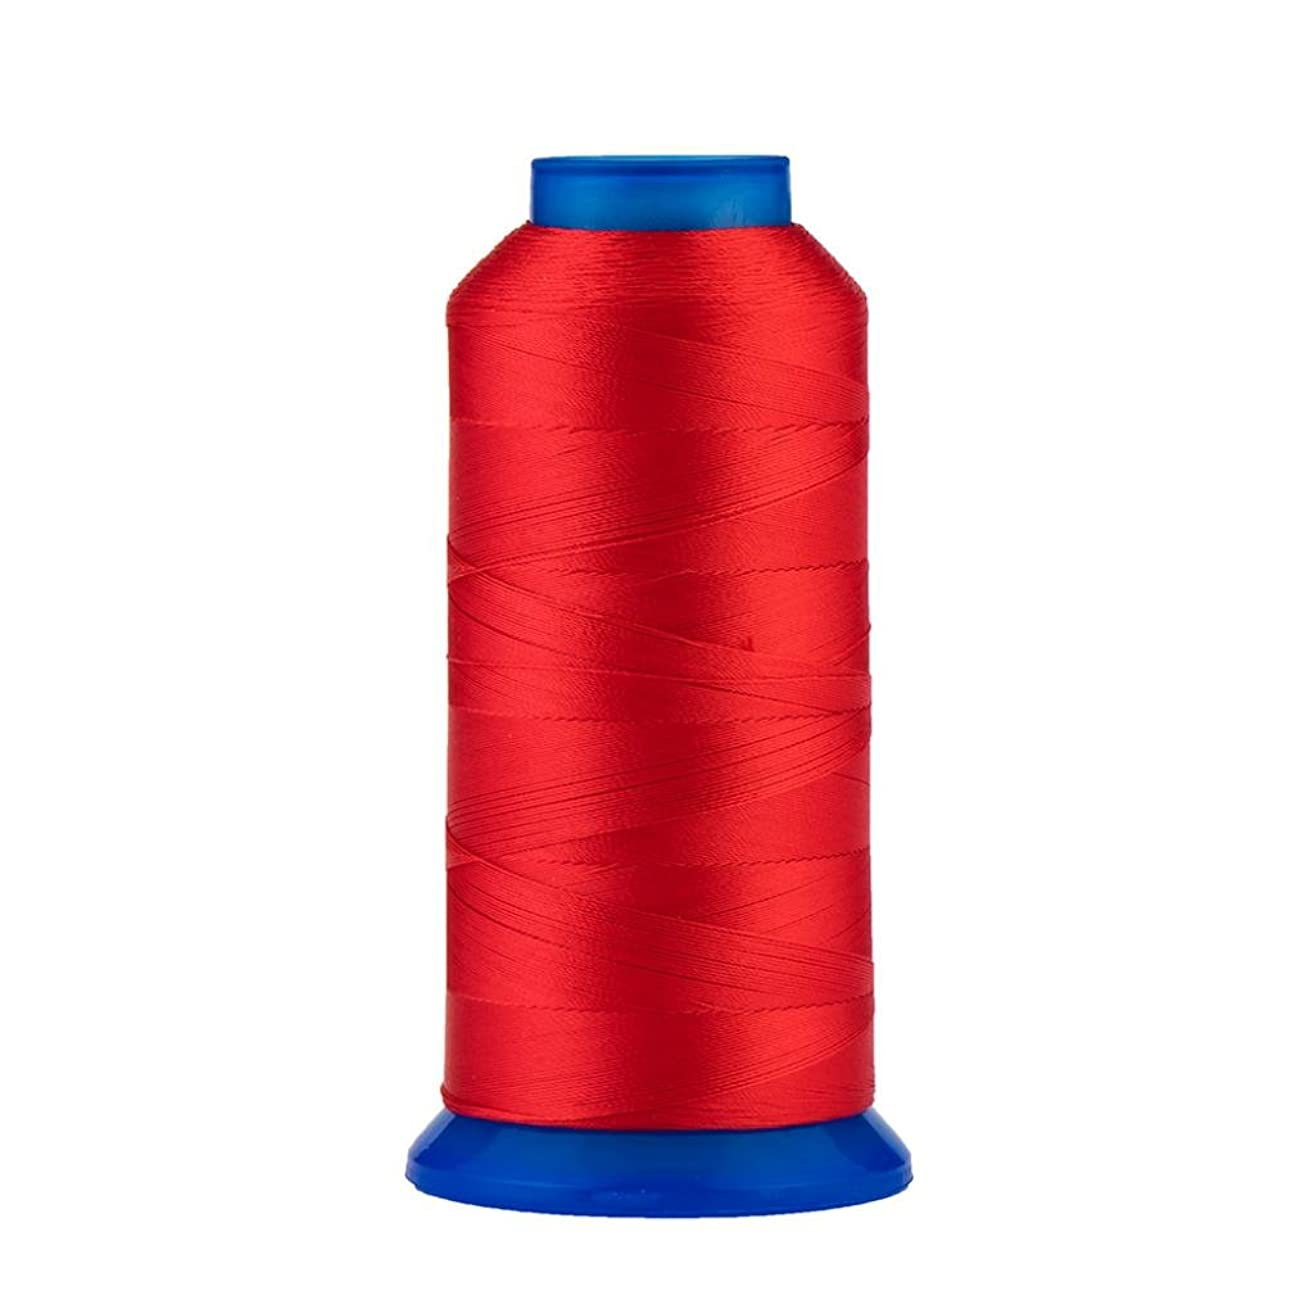 Selric [1500Yards / 130g / 30 Colors Available] UV Resistant High Strength Polyester Thread #69 T70 Size 210D/3 for Upholstery, Outdoor Market, Drapery, Beading, Purses, Leather (Red)